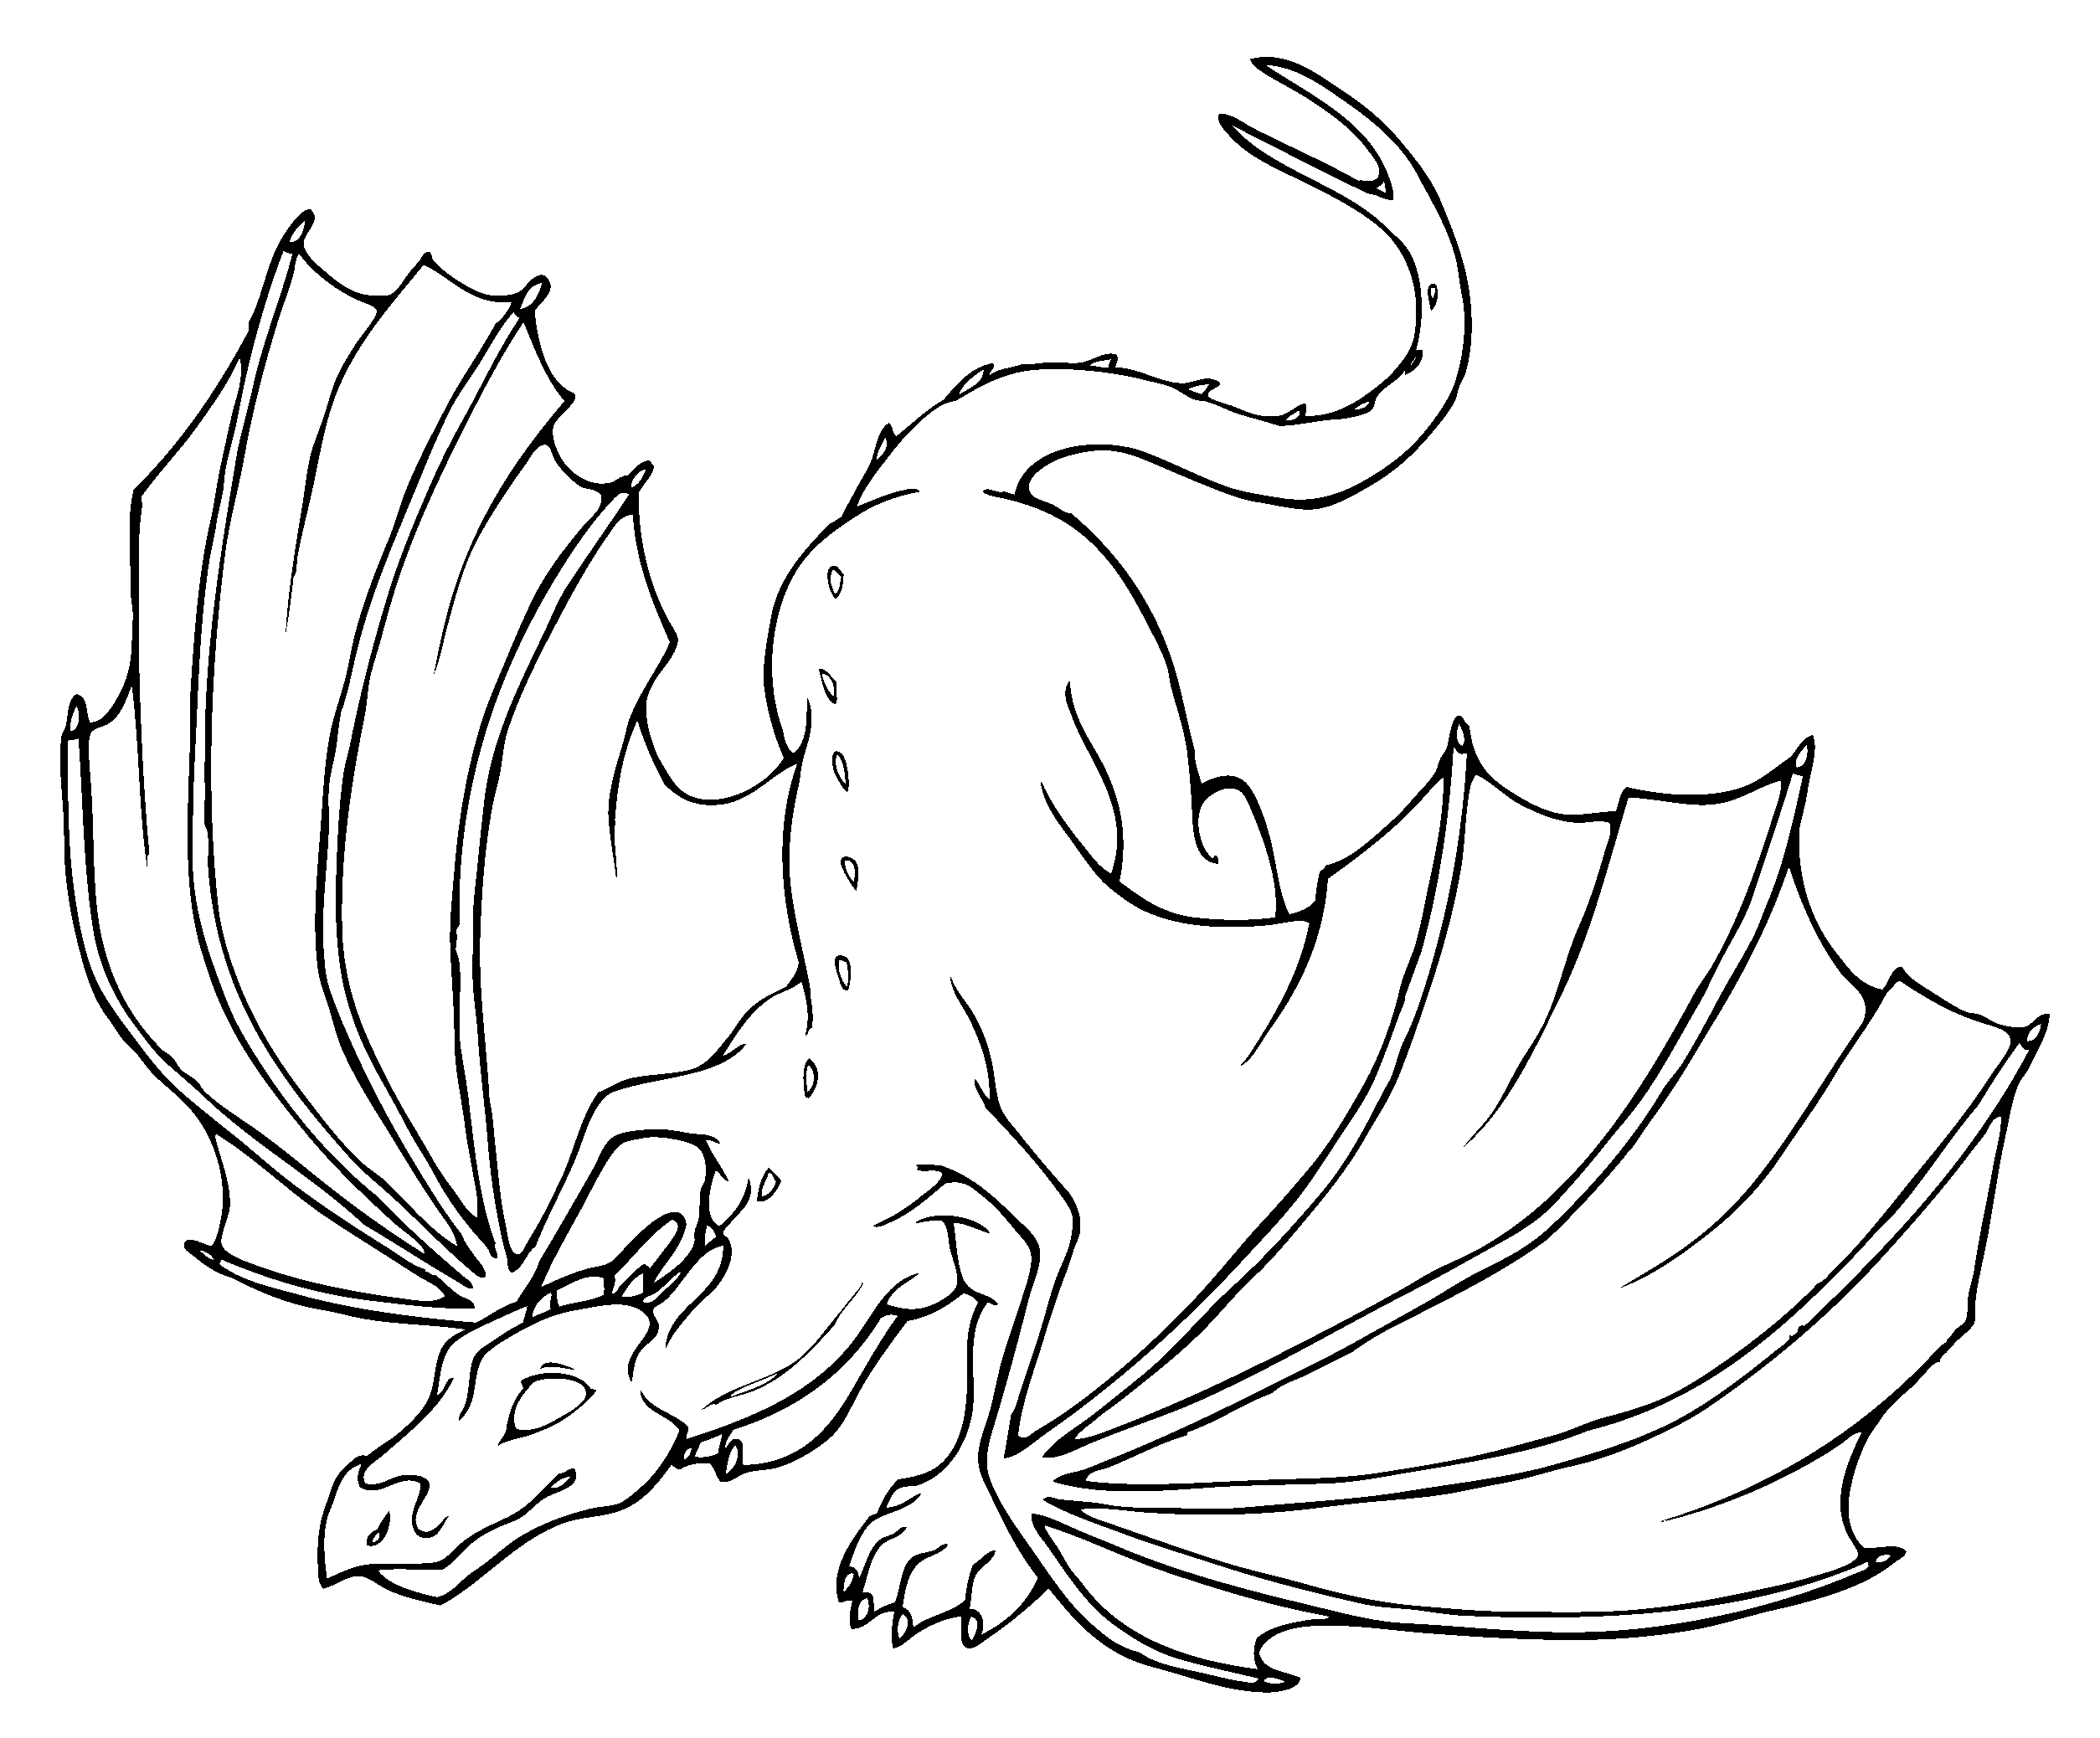 Coloring Book Dragons | Coloring Page